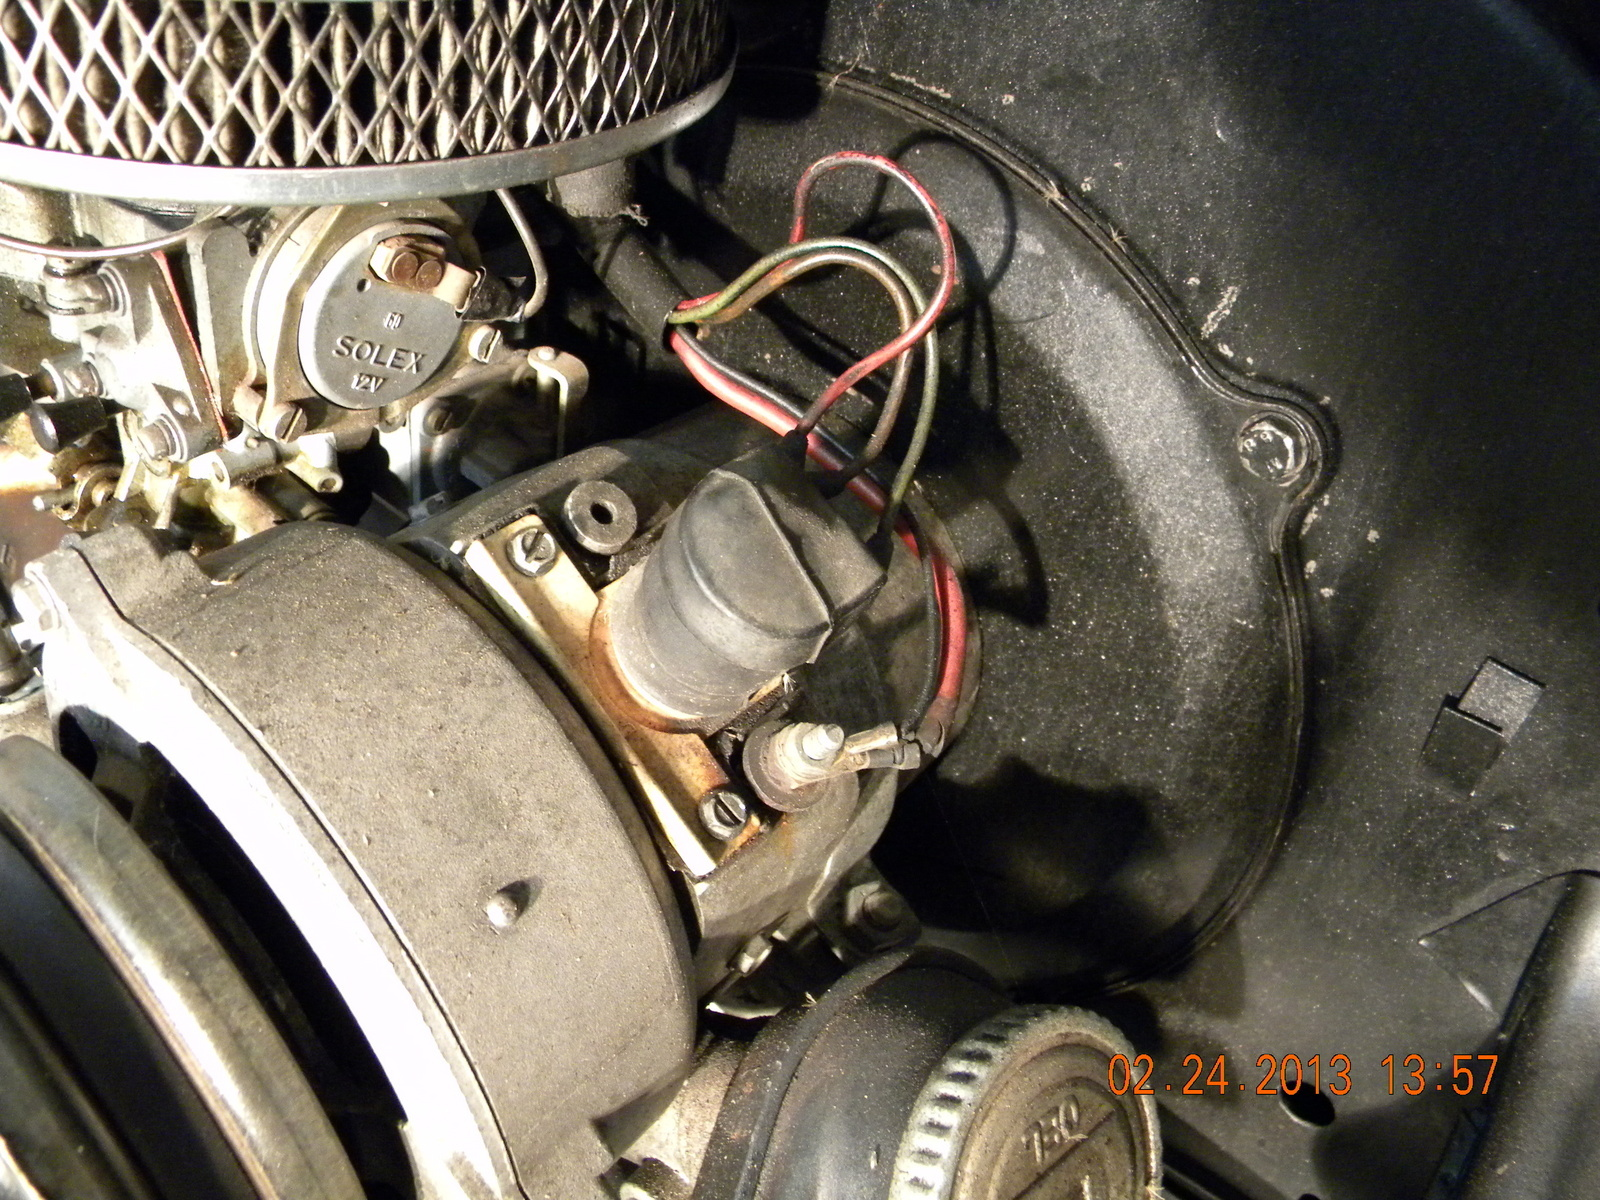 1974_volkswagen_beetle pic 8215095219041188070 1600x1200 volkswagen beetle questions try this again i have a 1974 beetle vw generator to alternator conversion wiring diagram at mifinder.co